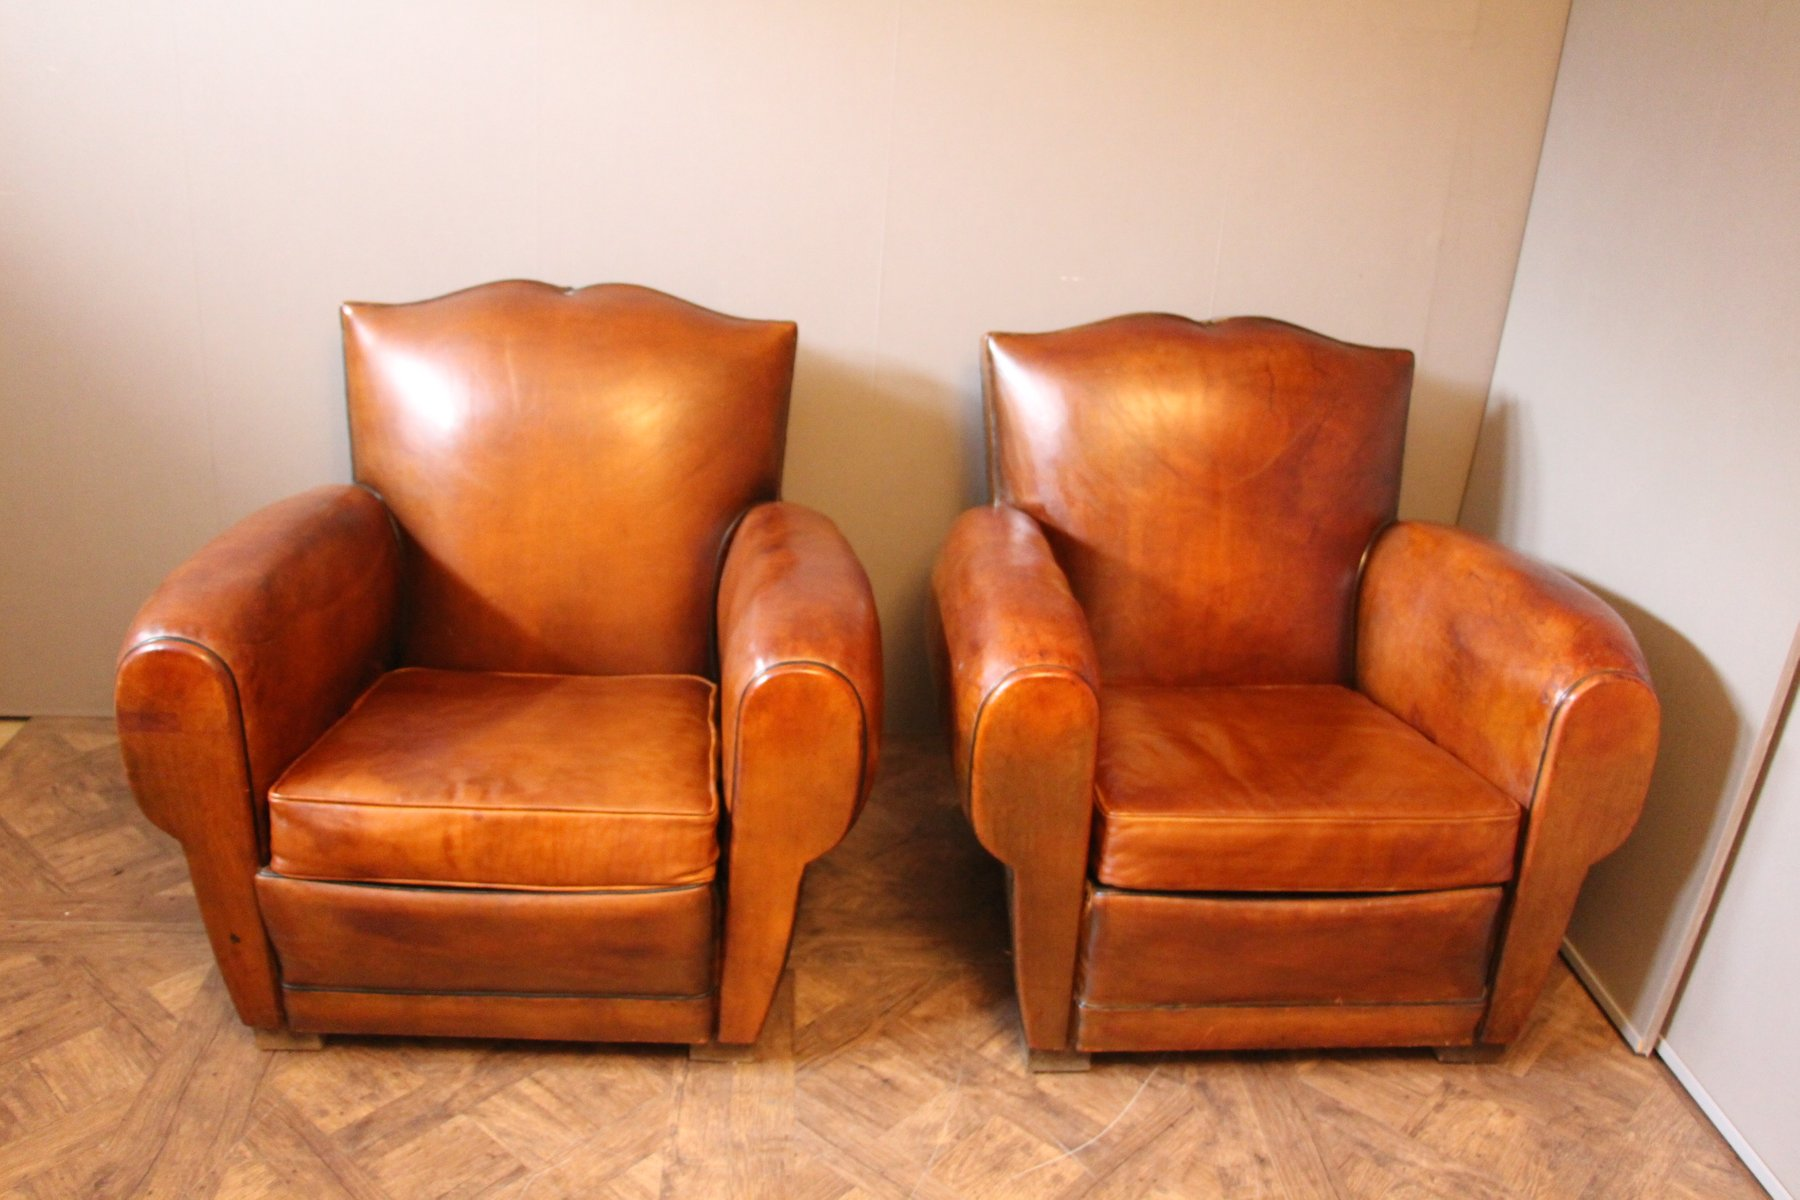 french leather club chairs with mustache backs 1930s set of 2 - Leather Club Chairs